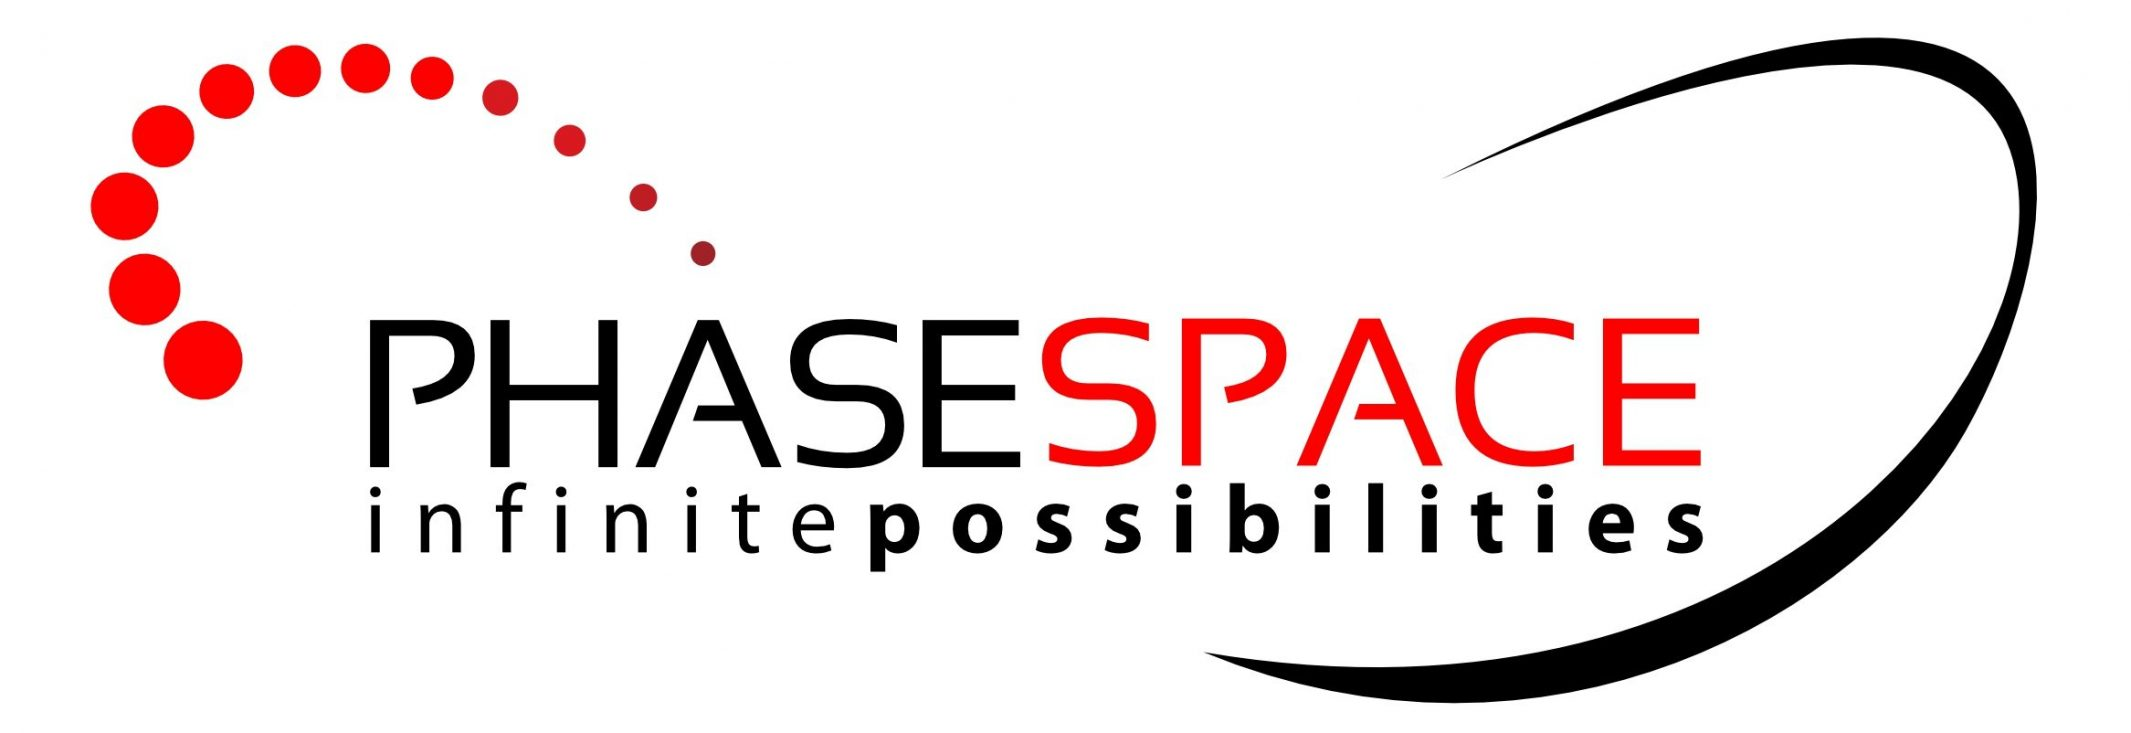 phasespace_logo